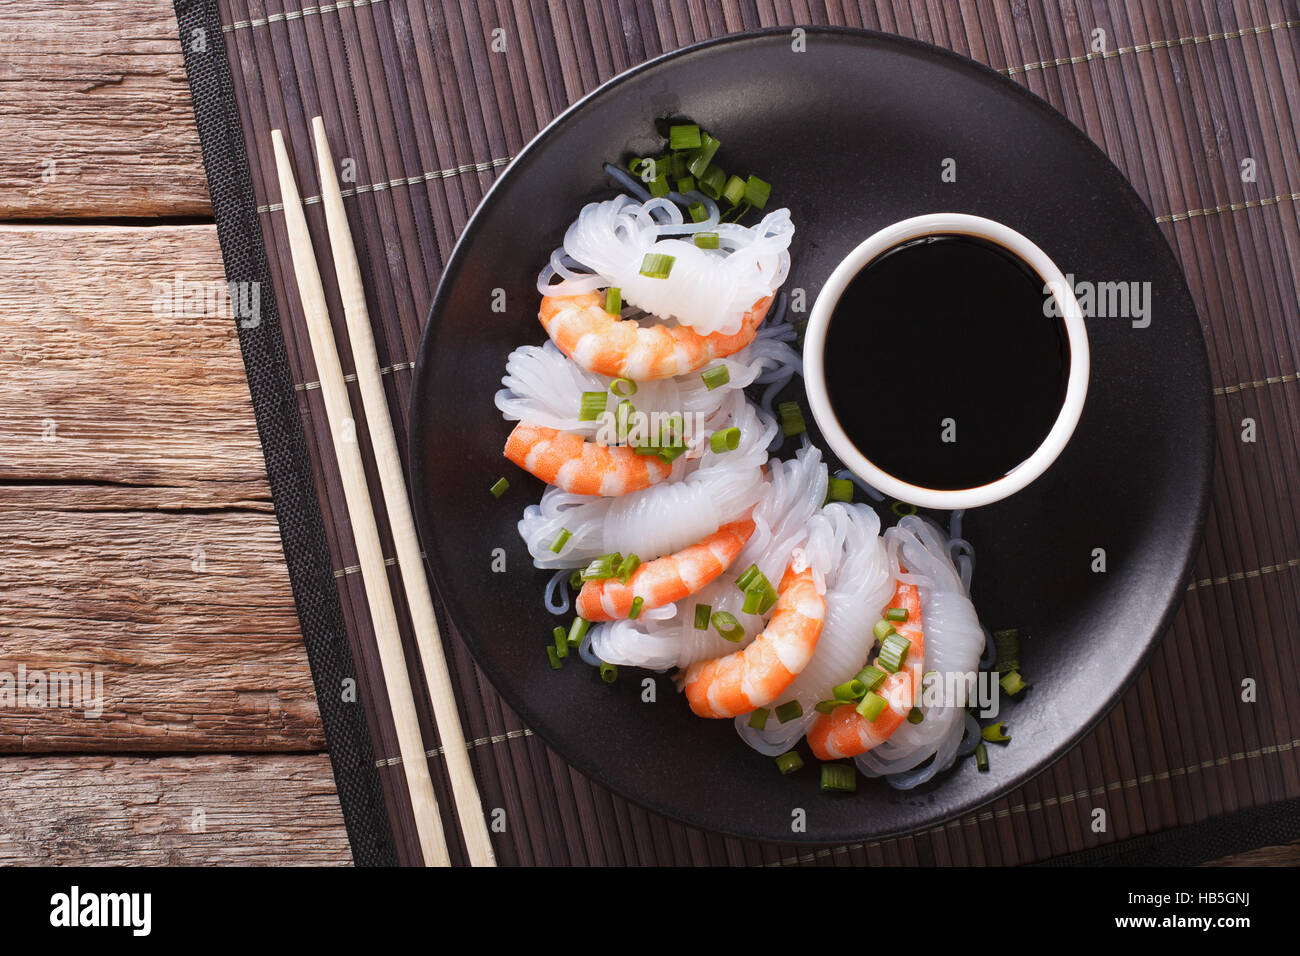 Japanese food: Shirataki with prawns, spring onions and soy sauce on a plate close-up. Horizontal view from above - Stock Image